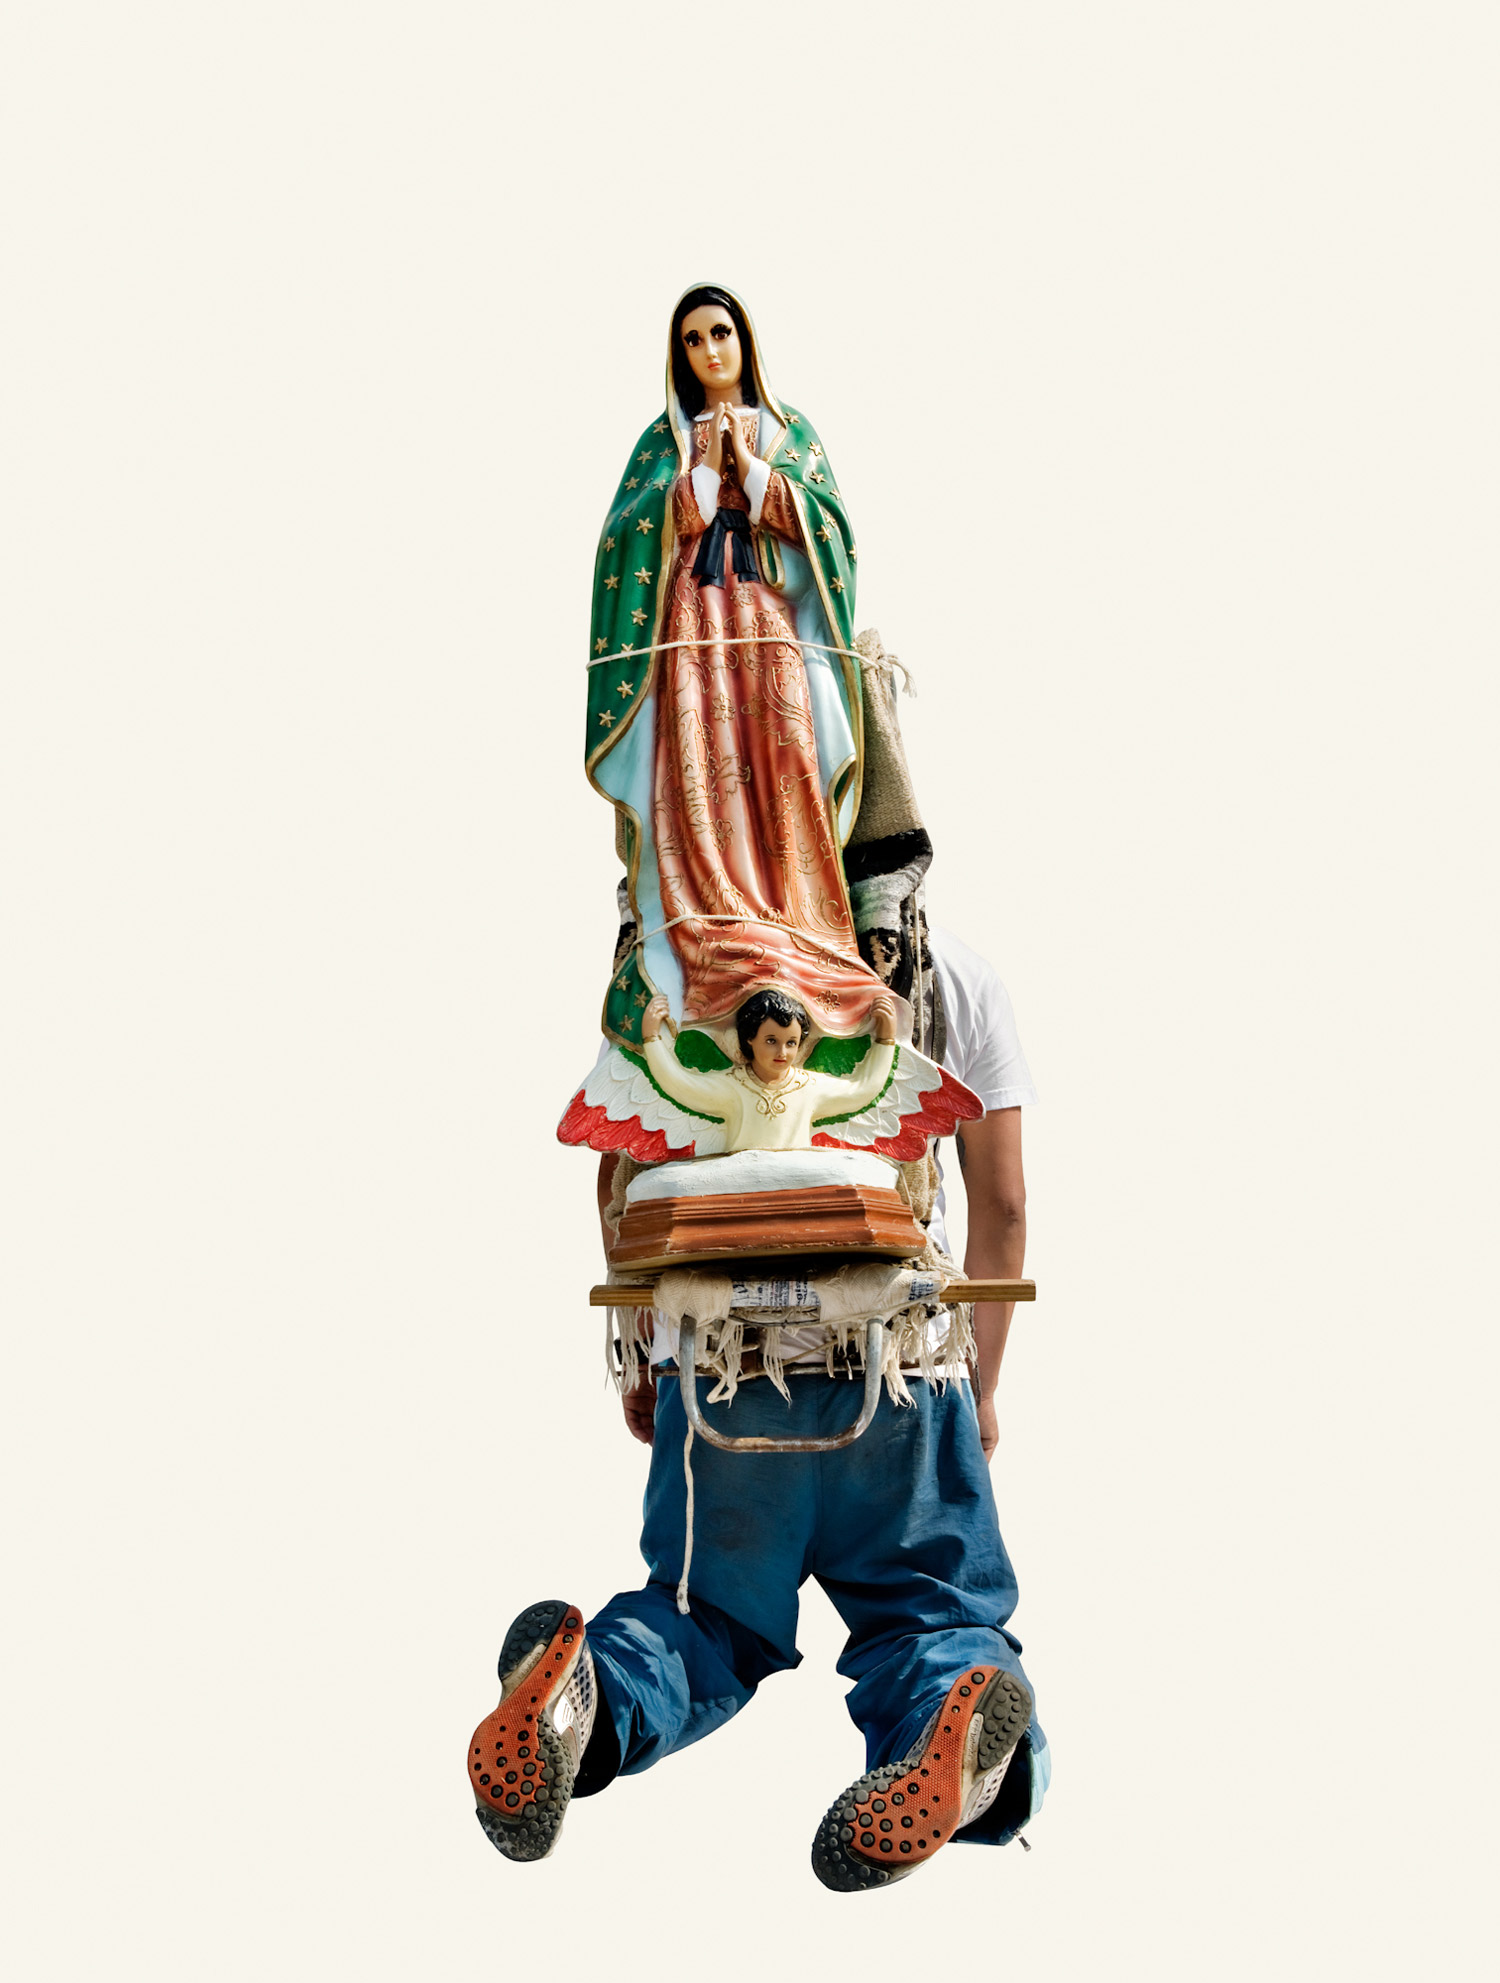 From the series, The Road to Tepeyac, 2009